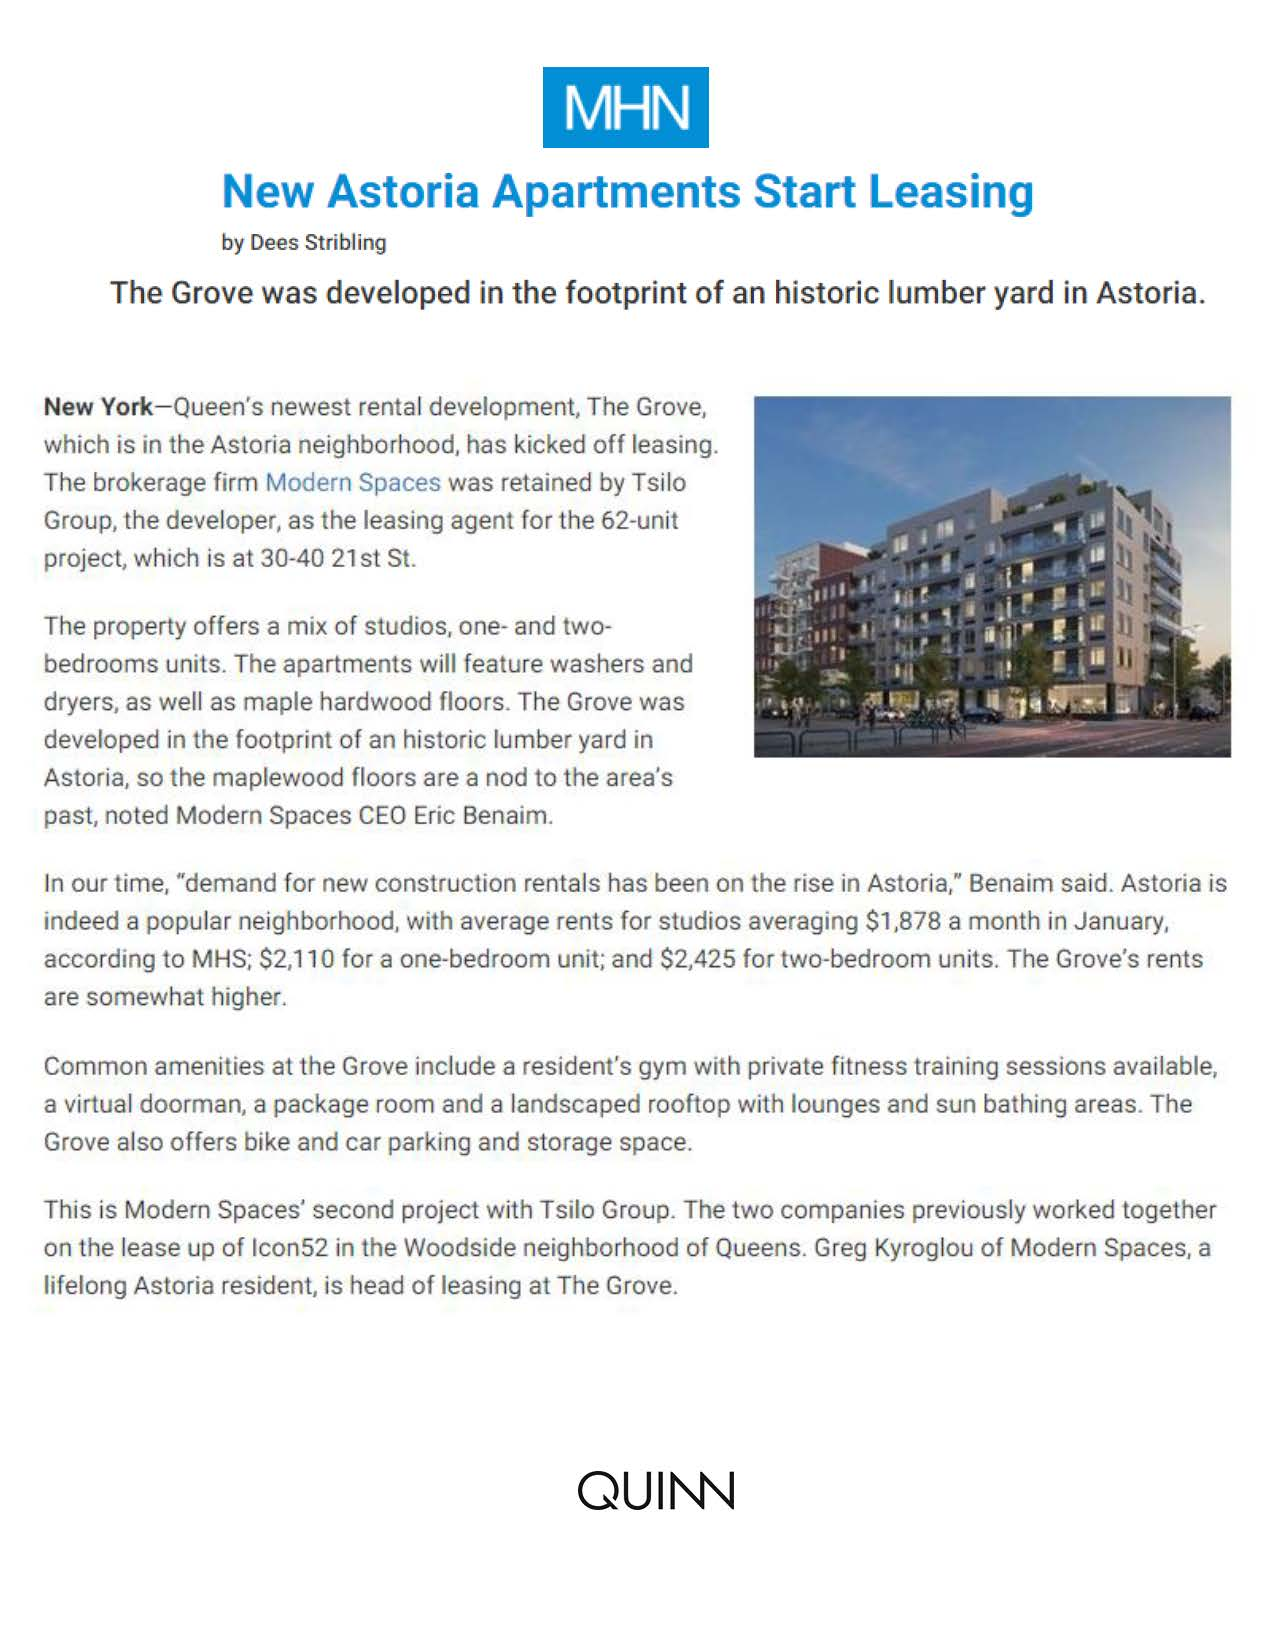 MHN - New Astoria Apartments Start Leasing - 02.02.16 (1)